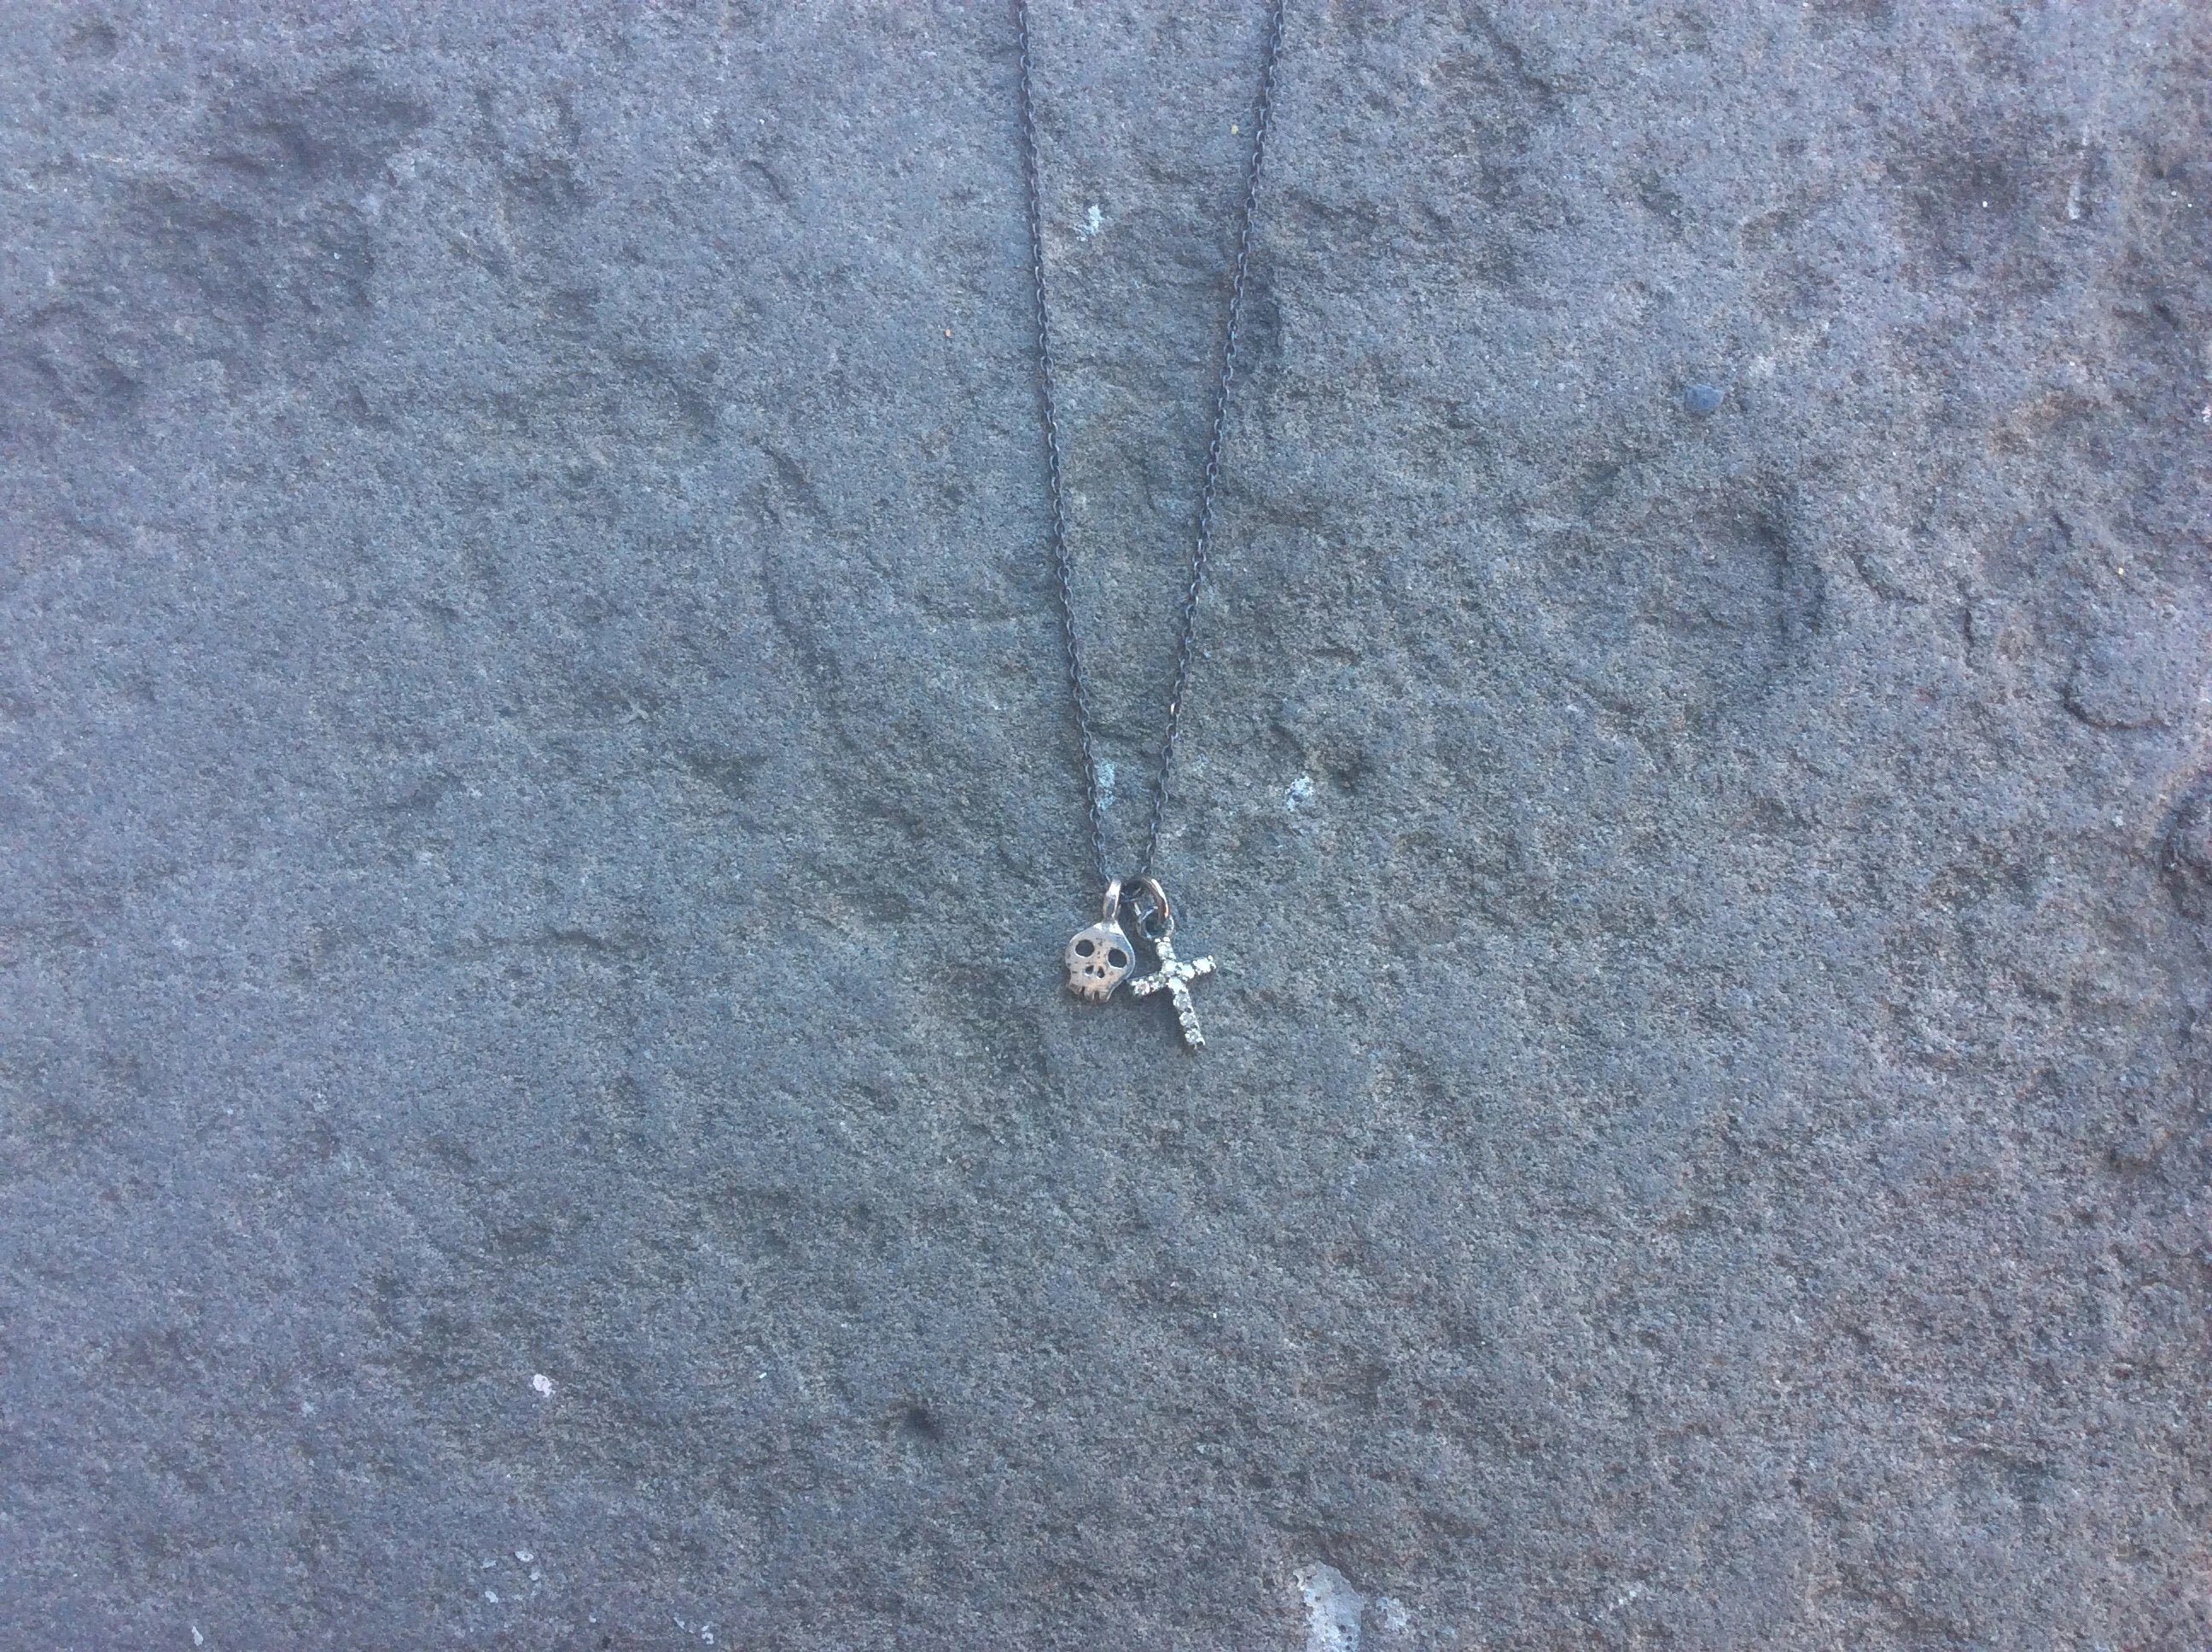 Tiny Skull Gem and Diamond Cross Necklace